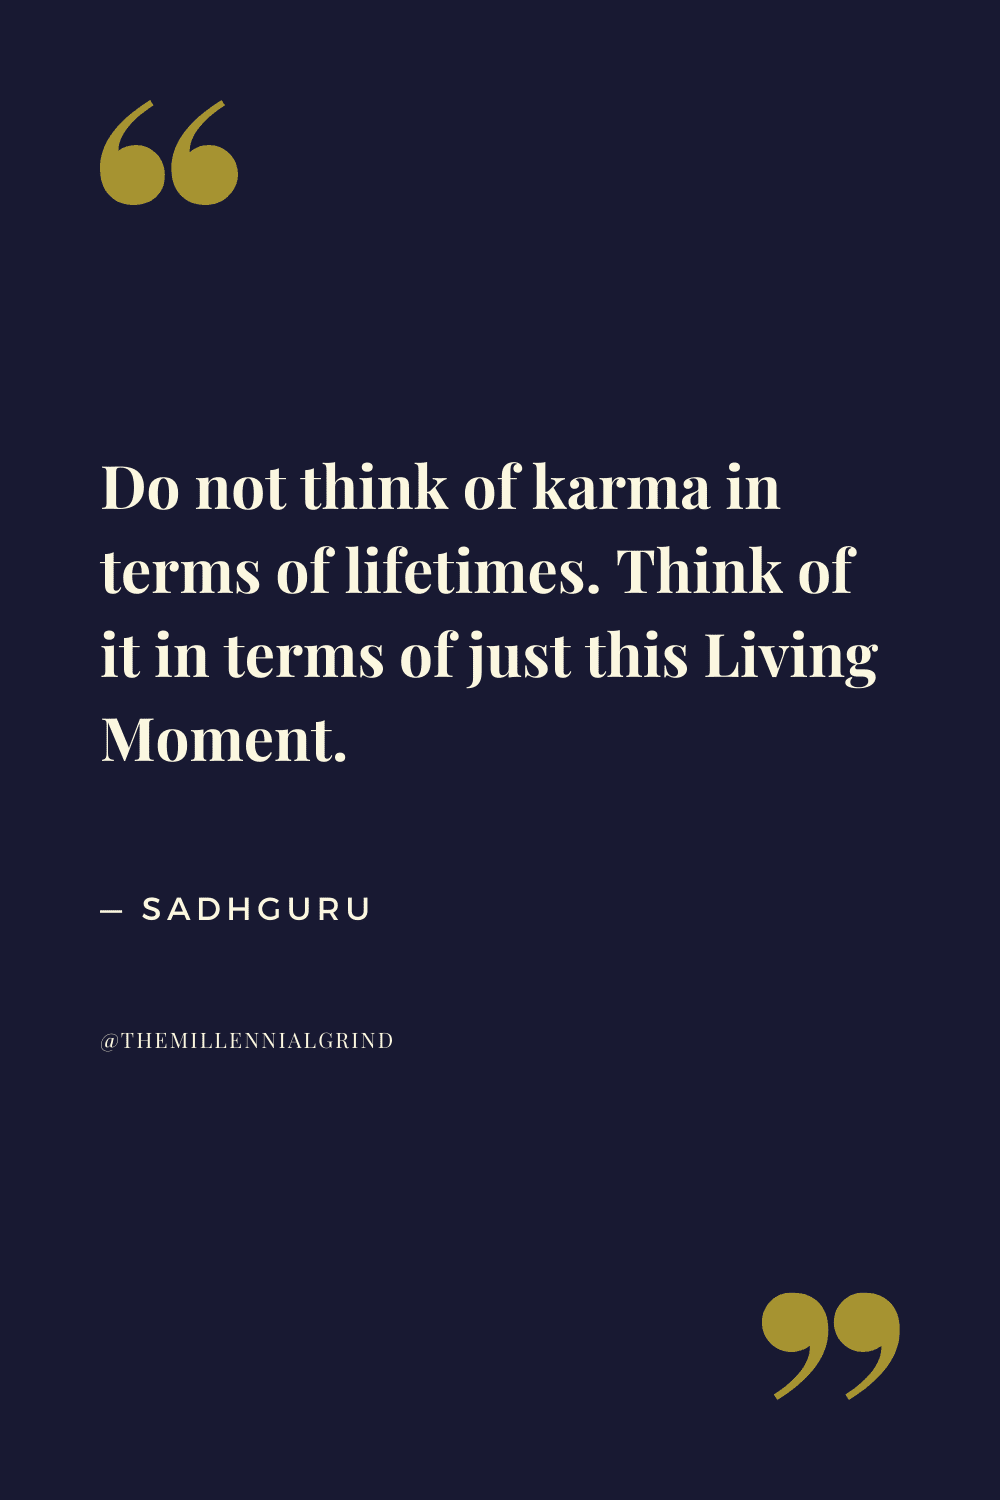 Do not think of karma in terms of lifetimes. Think of it in terms of just this Living Moment.